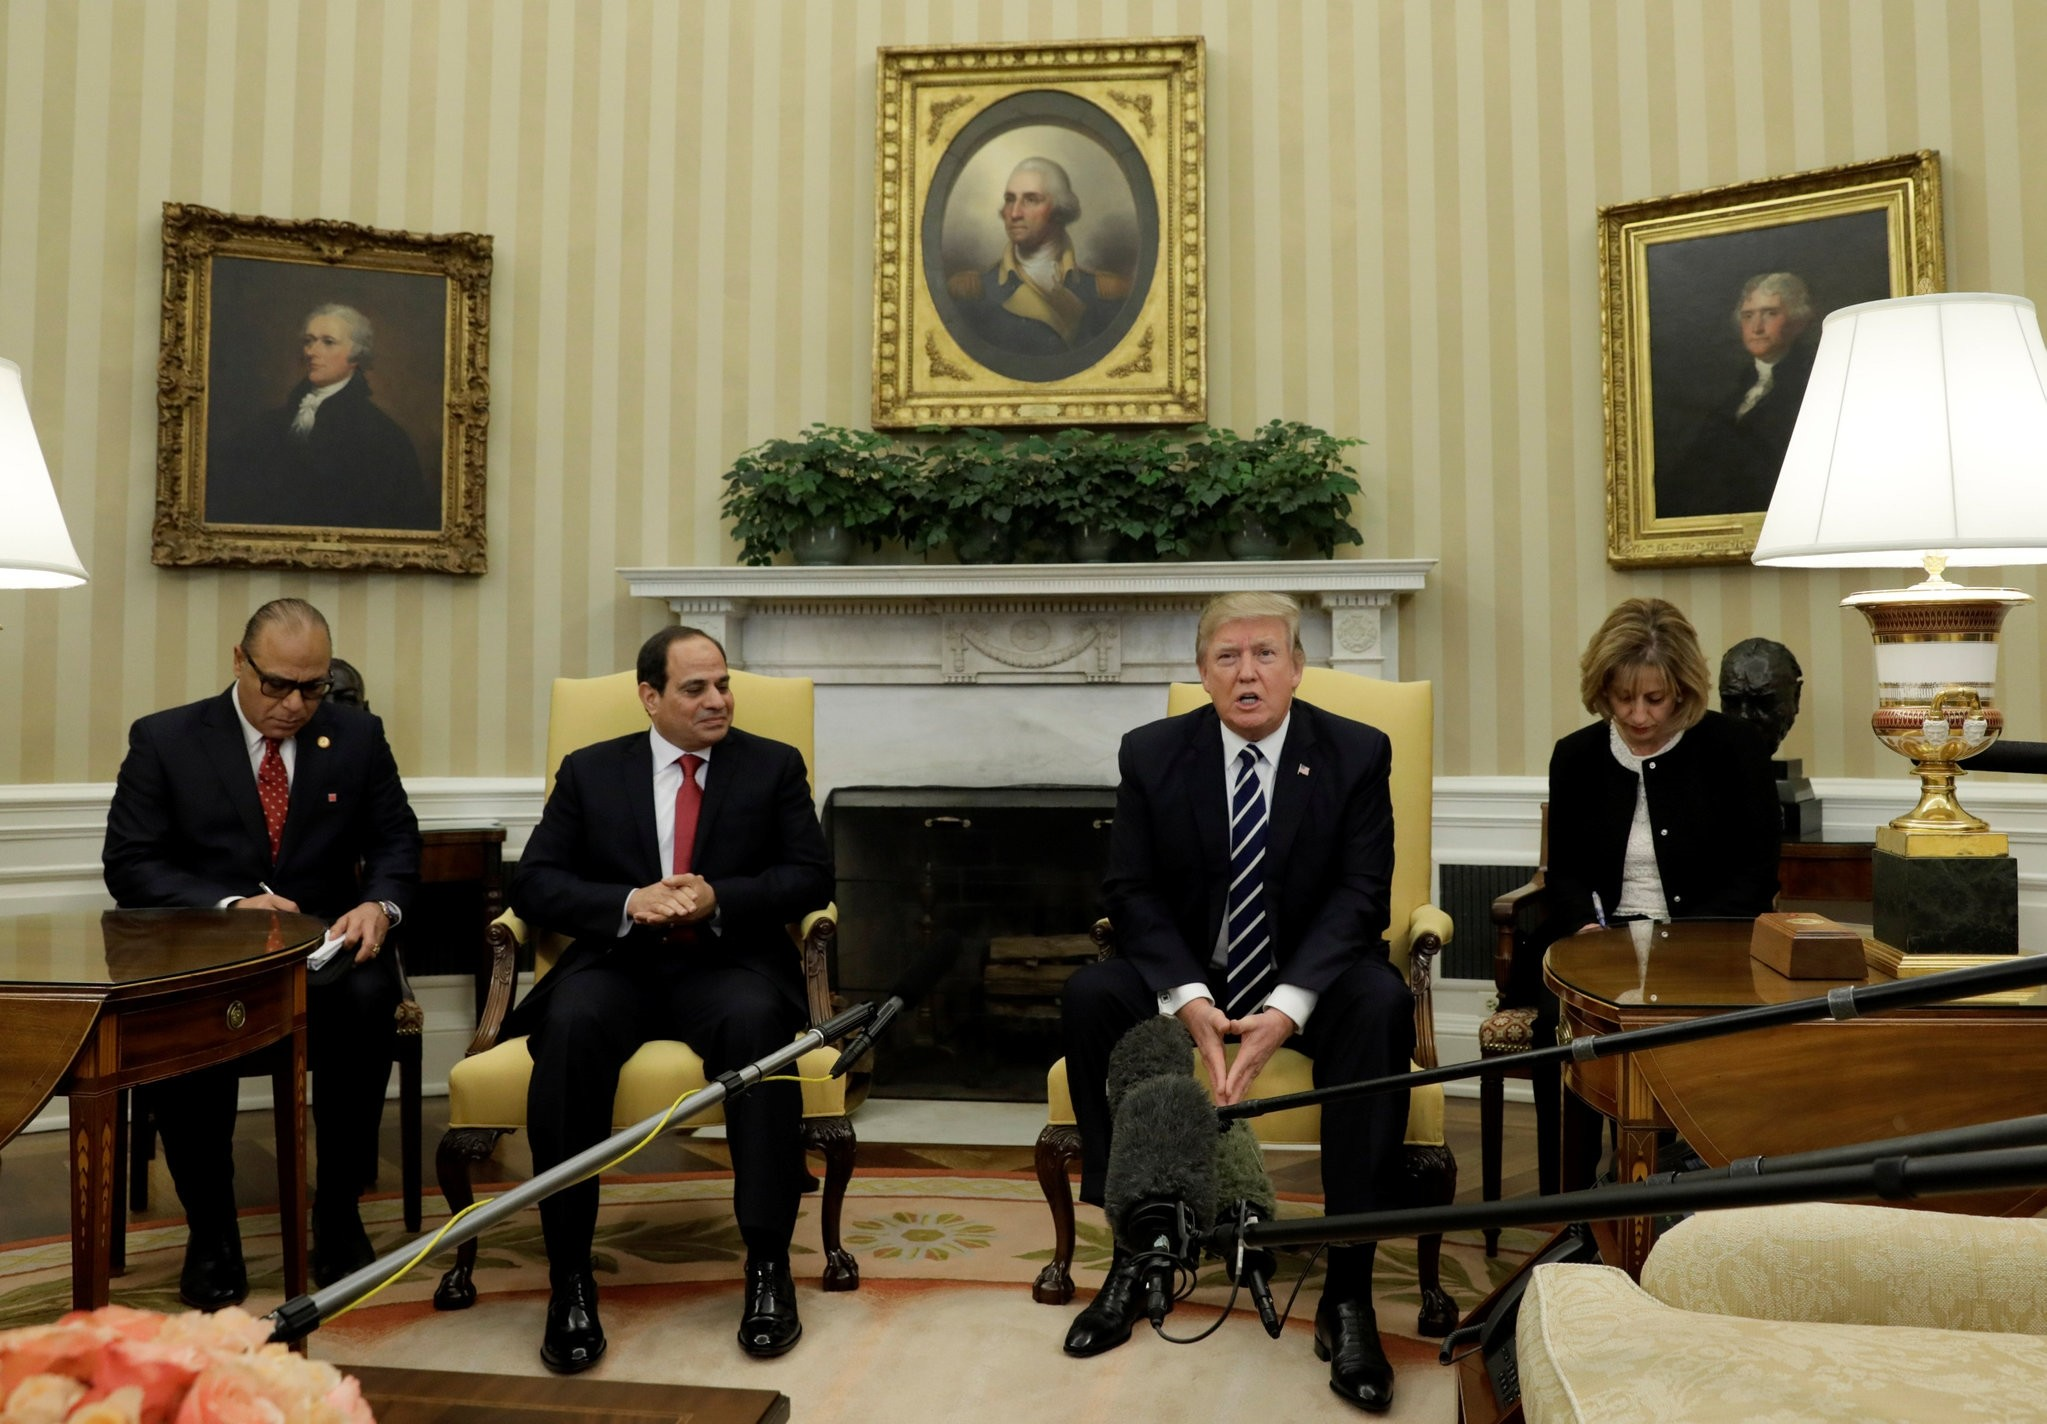 U.S. President Donald Trump speaks during his meeting with Egyptian President Al Sisi in the Oval Office of the White House. (Reuters Photo)